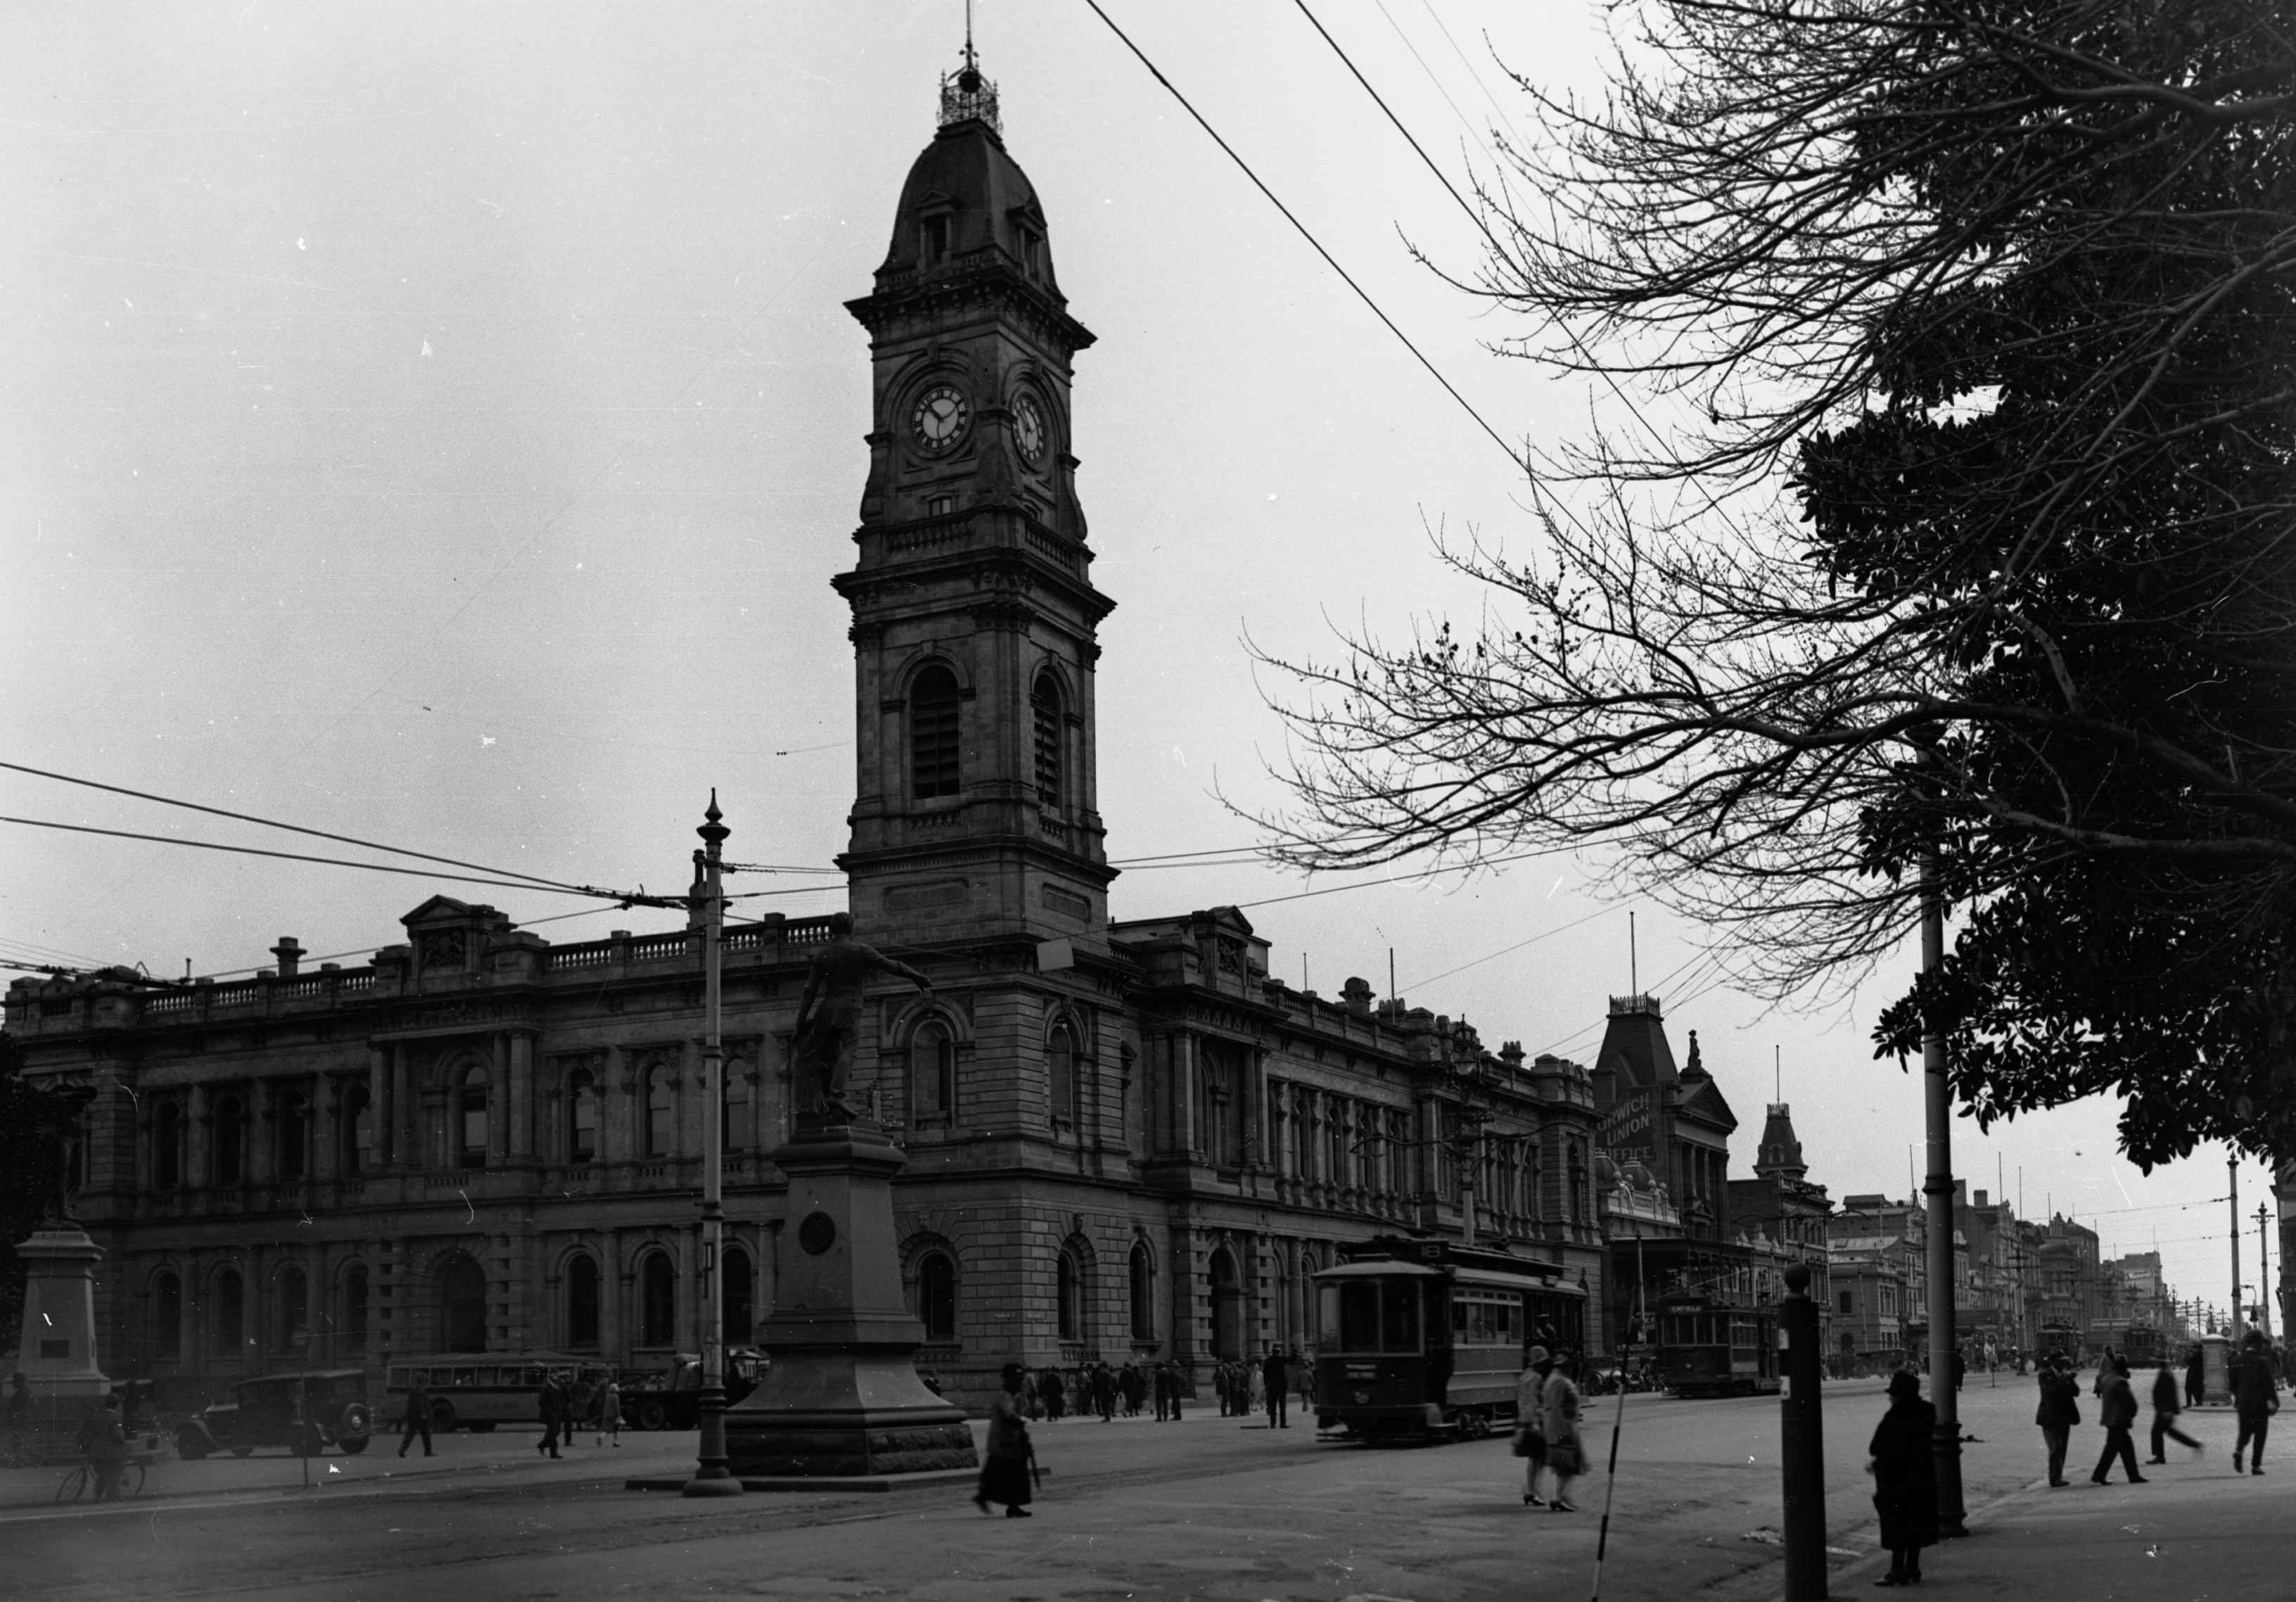 Adelaide General Post Office Adelaidia